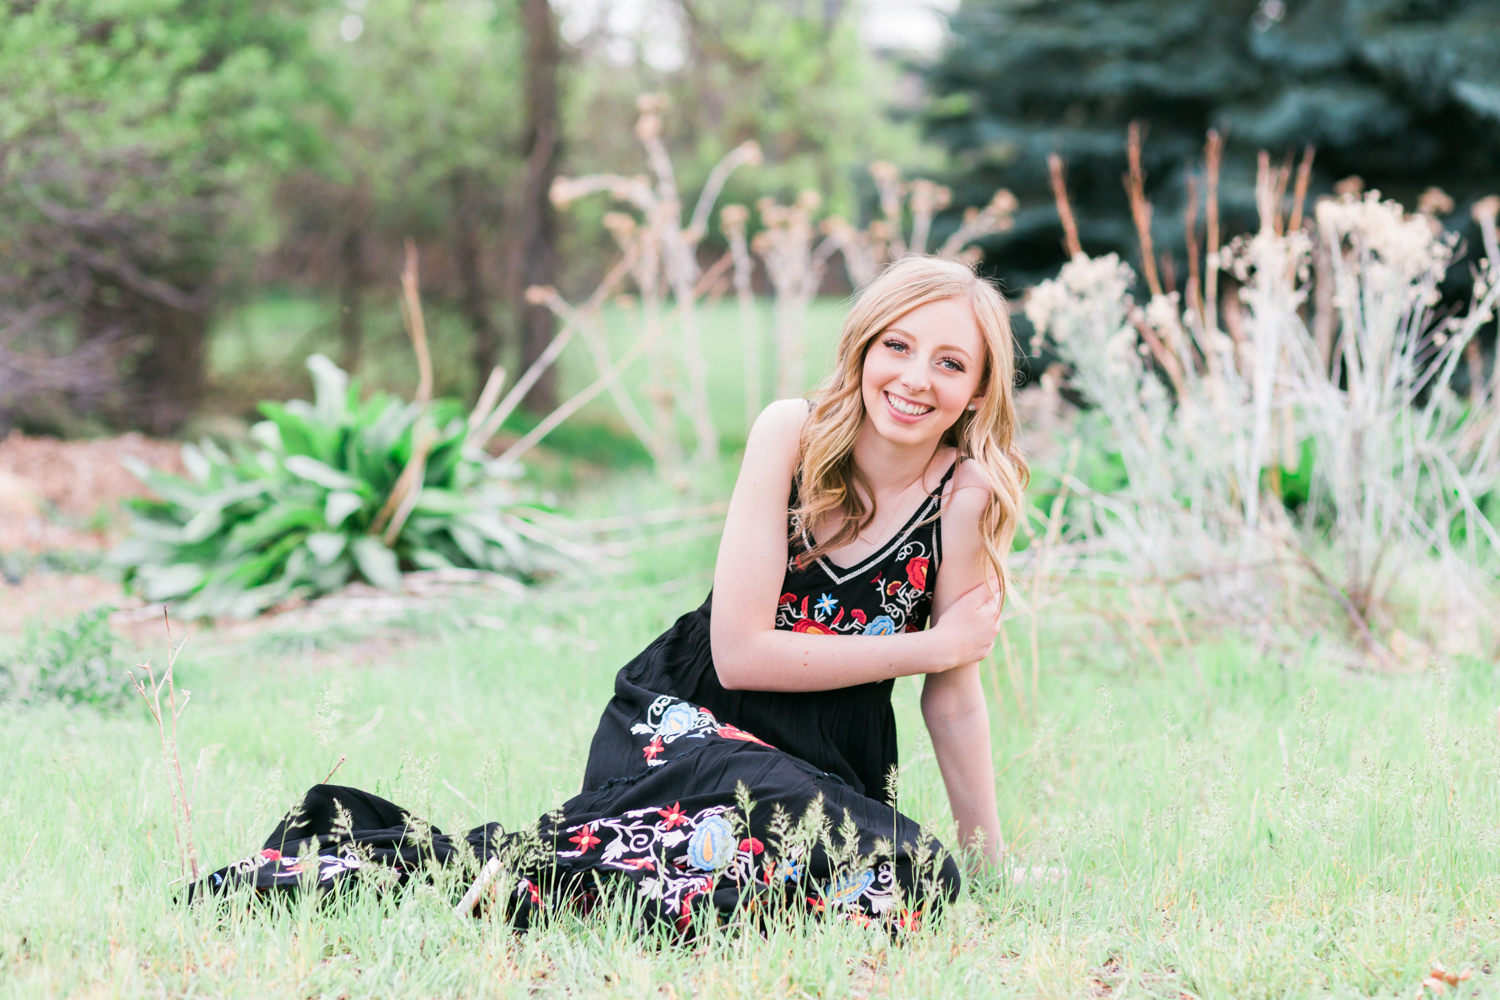 High-school-senior-pictures-whitney-bufton-photography-67.jpg